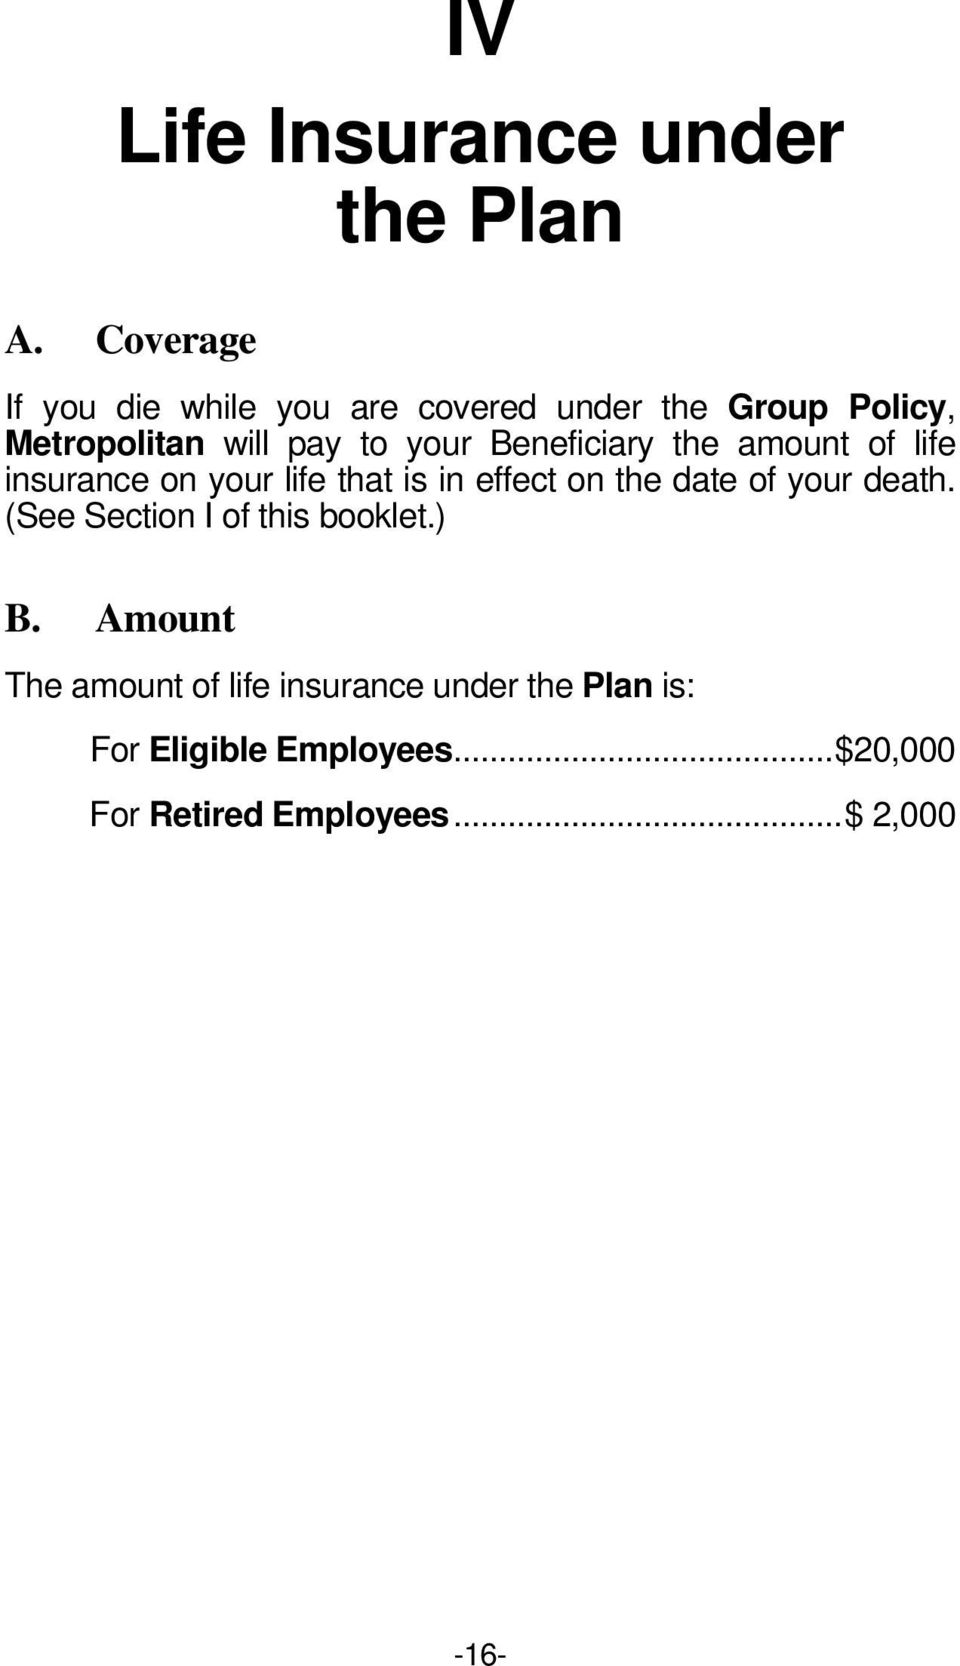 Beneficiary the amount of life insurance on your life that is in effect on the date of your death.